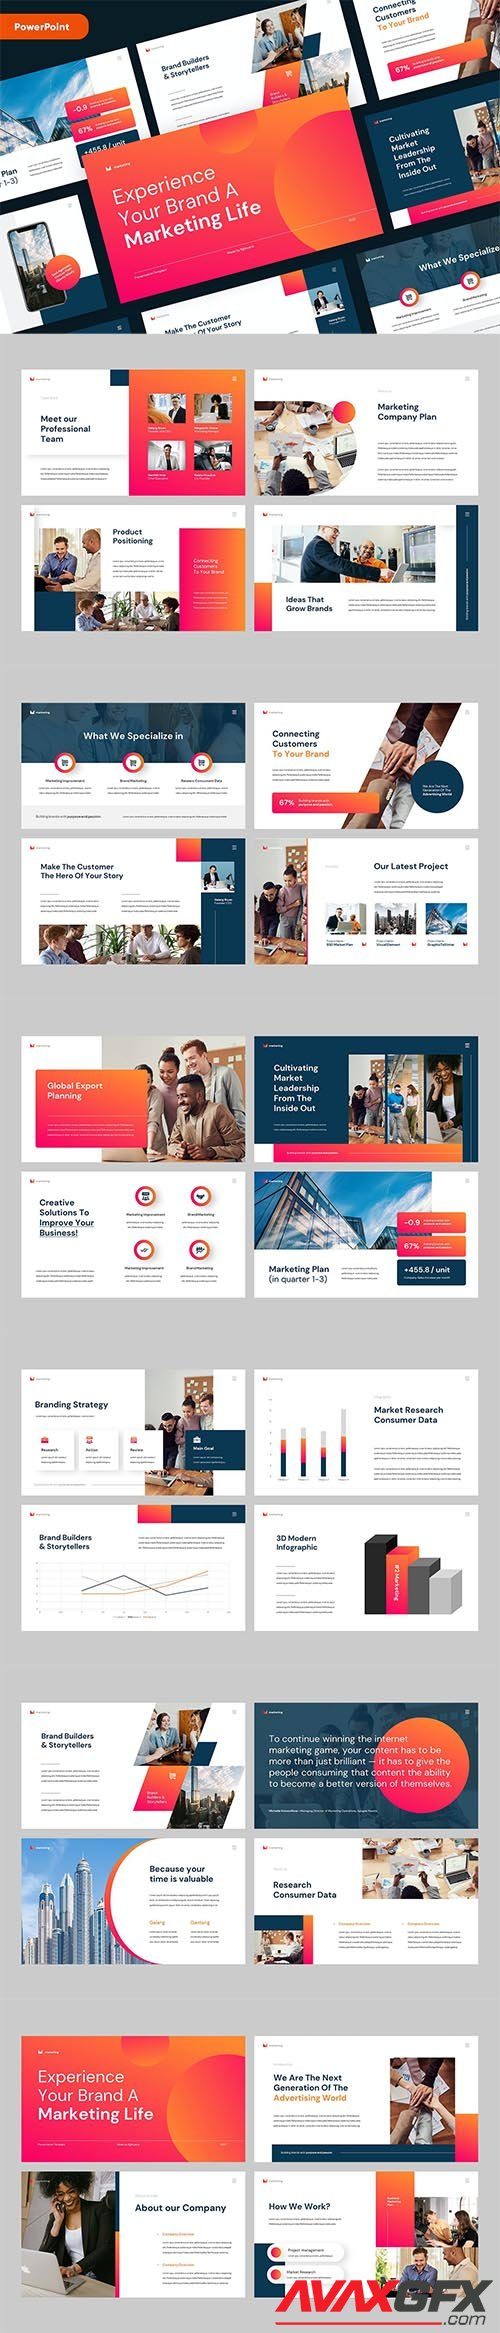 Business Marketing PowerPoint, Keynote and Google Slides Template